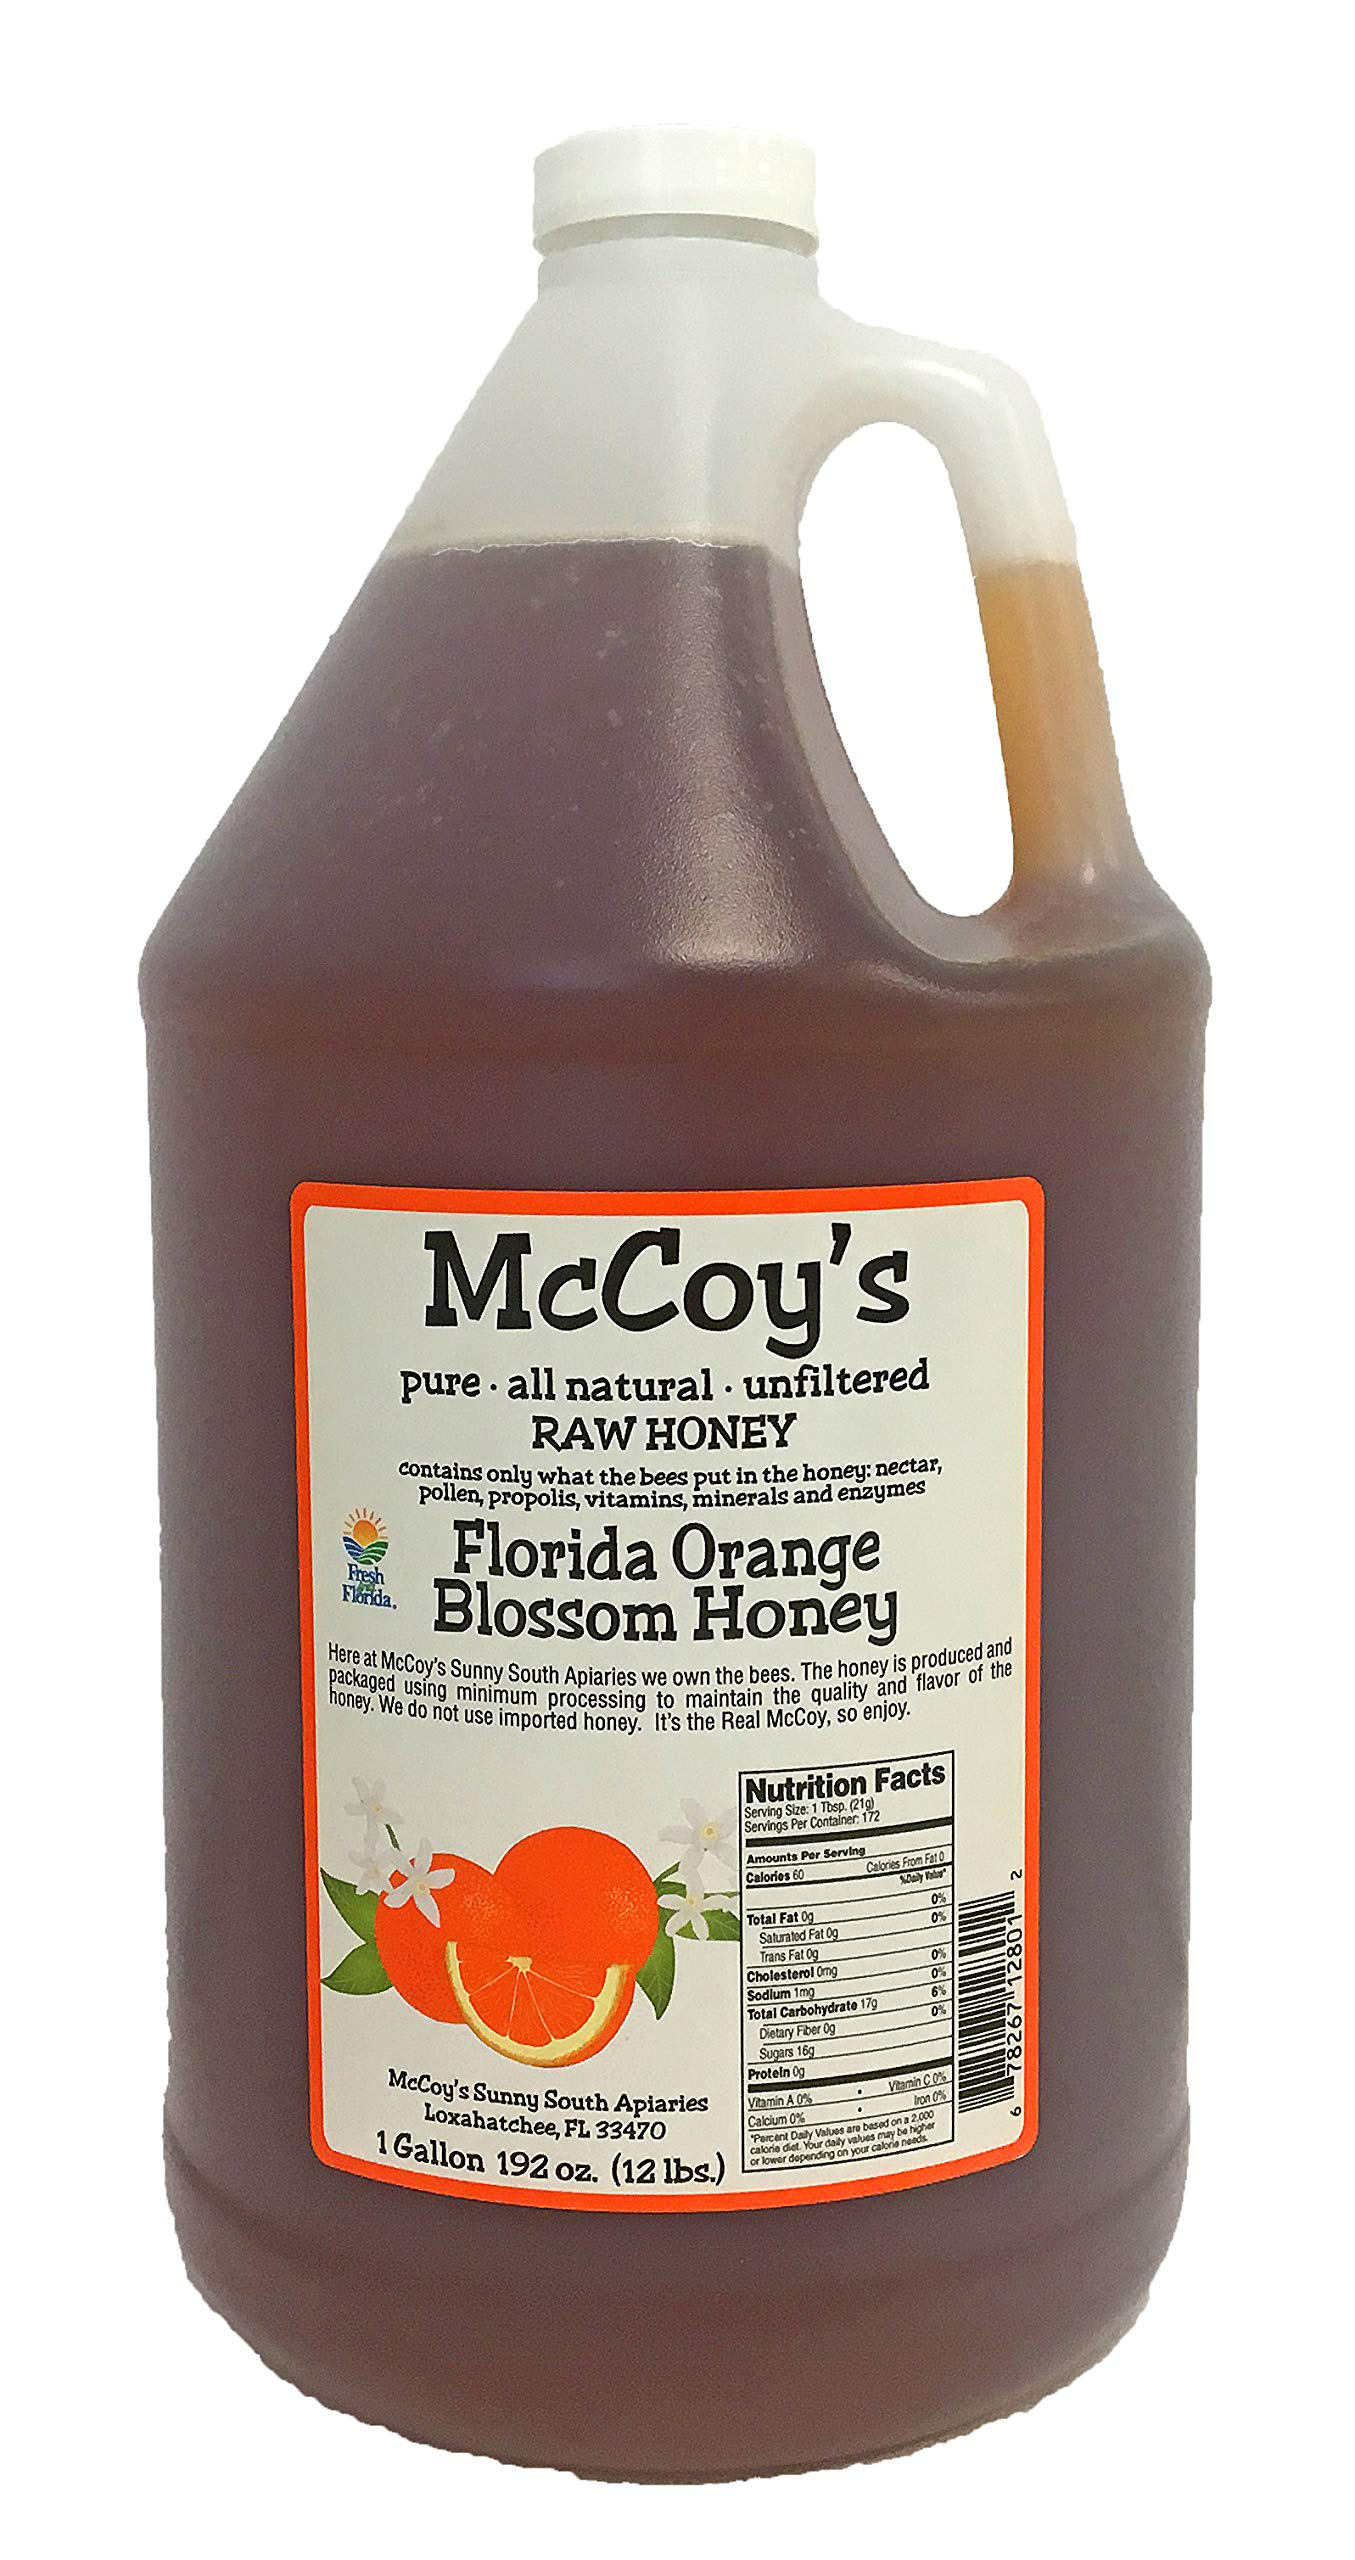 Raw Honey - Pure All Natural Unfiltered & Unpasteurized - McCoy's Honey Florida Orange Blossom Honey 1 Gallon